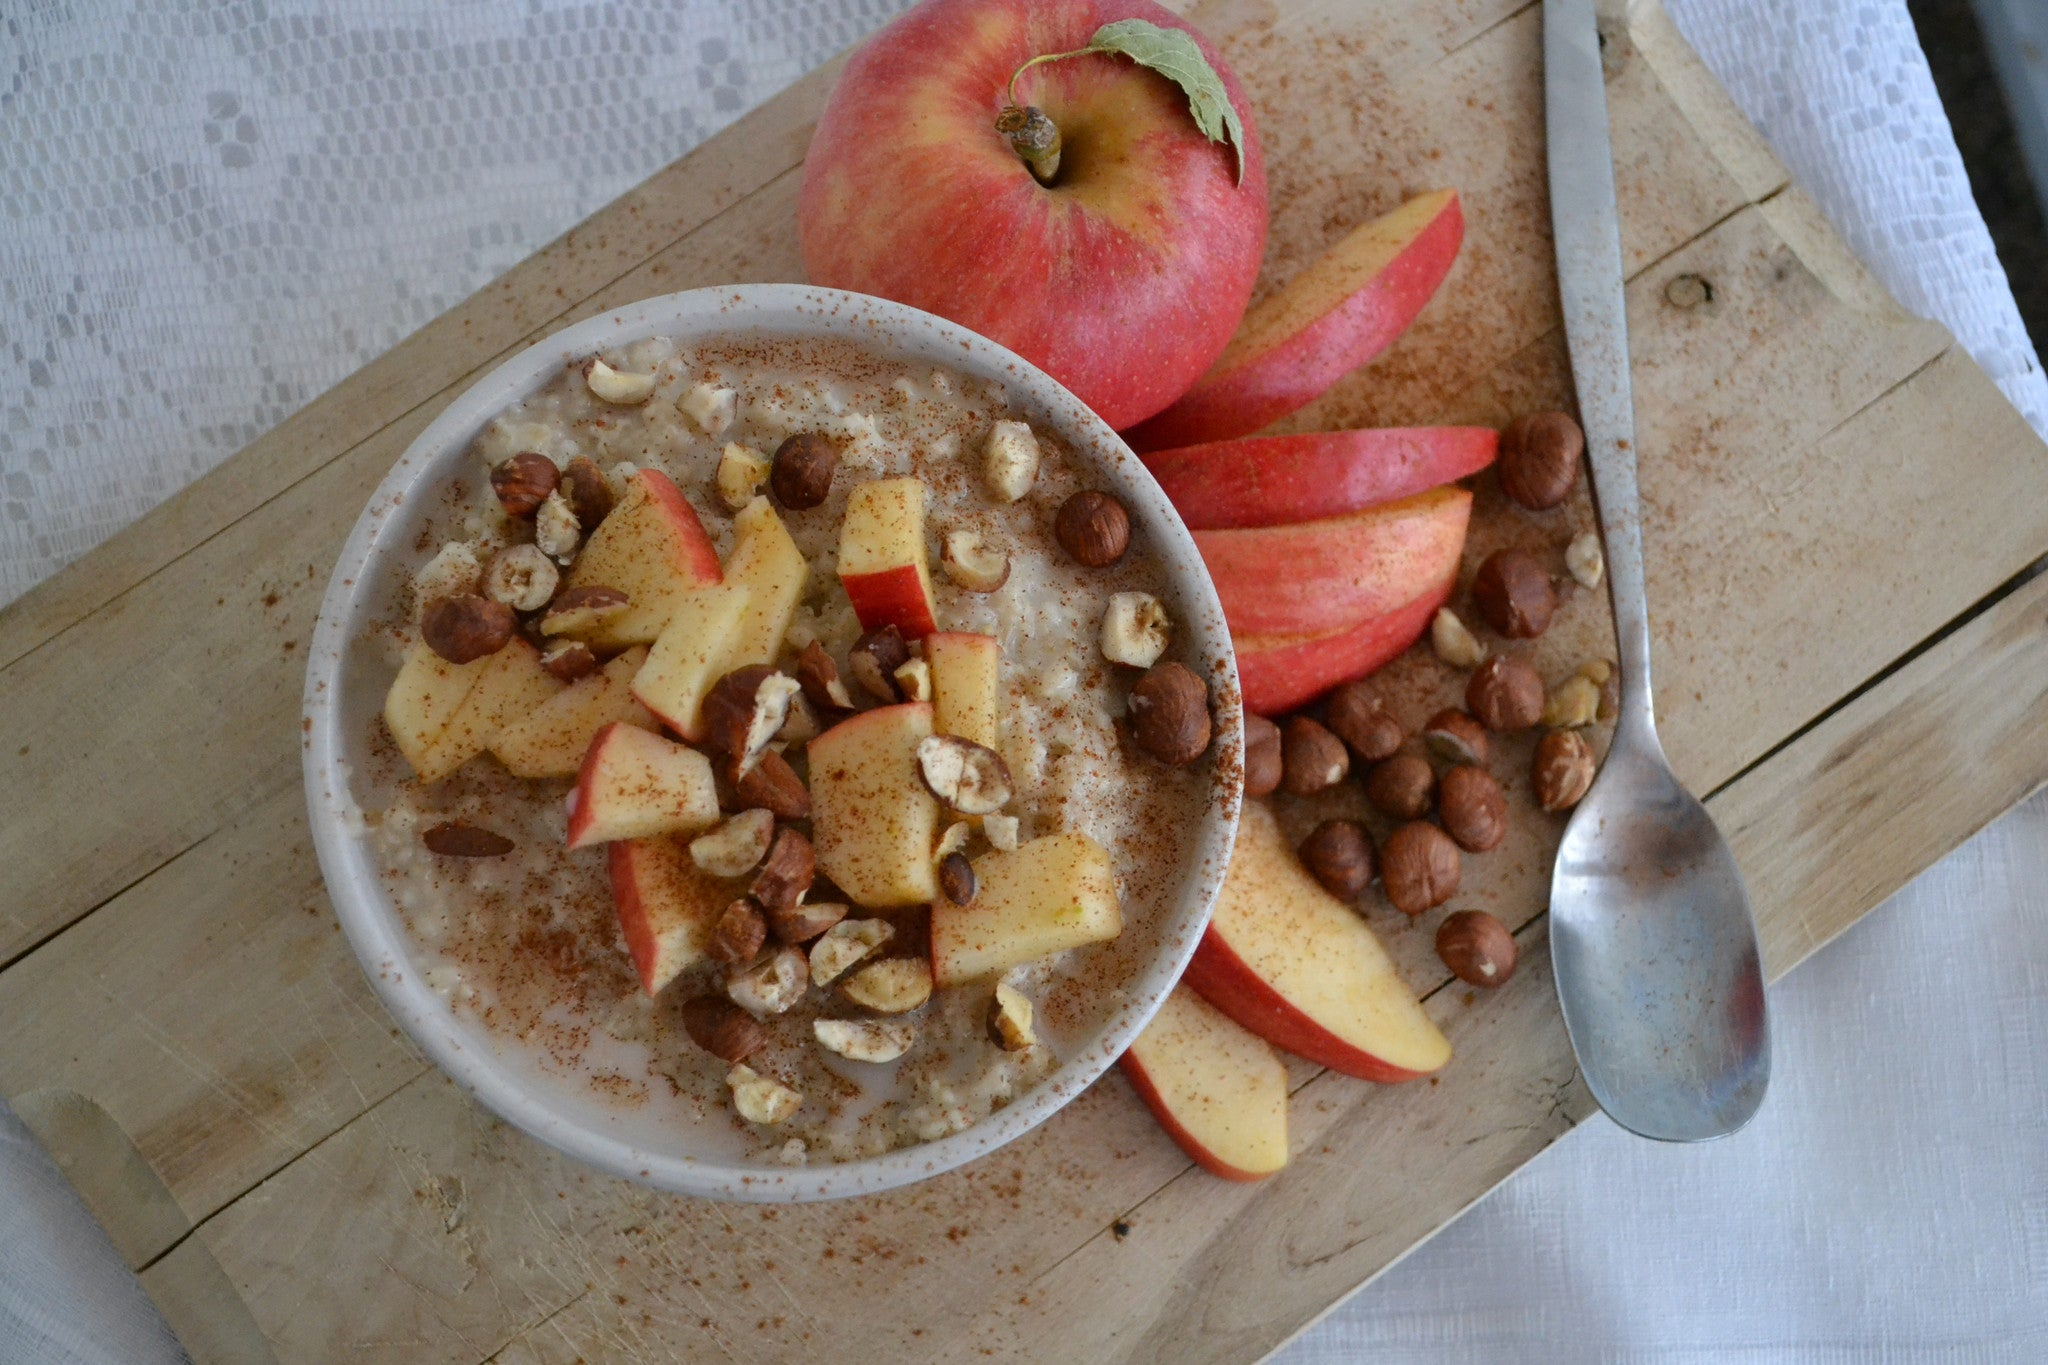 Apple Cinnamon Oatmeal with Hazelnuts